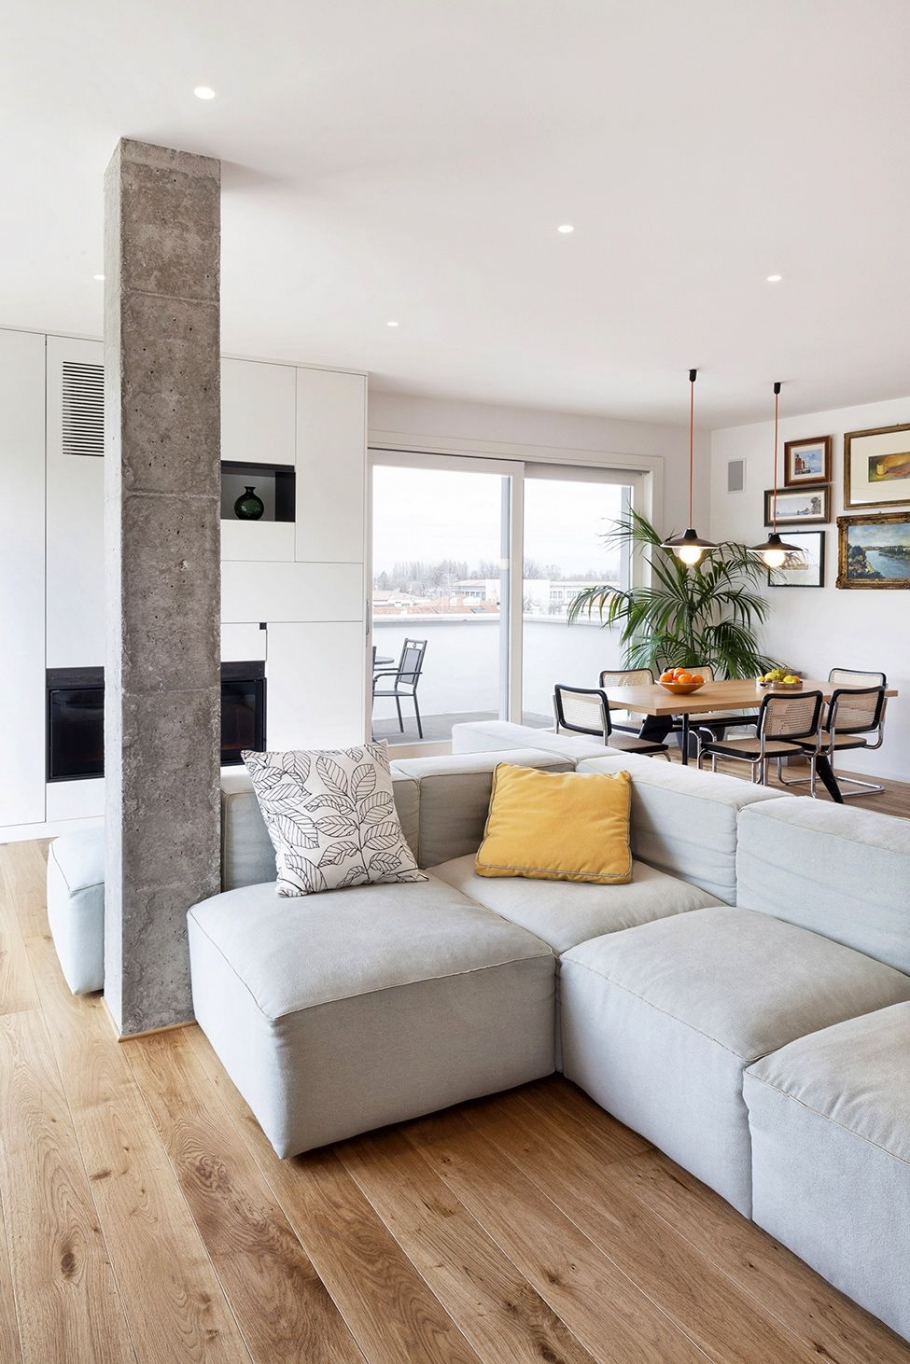 90 Interesting Modern Apartment Design Ideas - Tips On Redesigning Your Room for A More Dynamic Room-9888